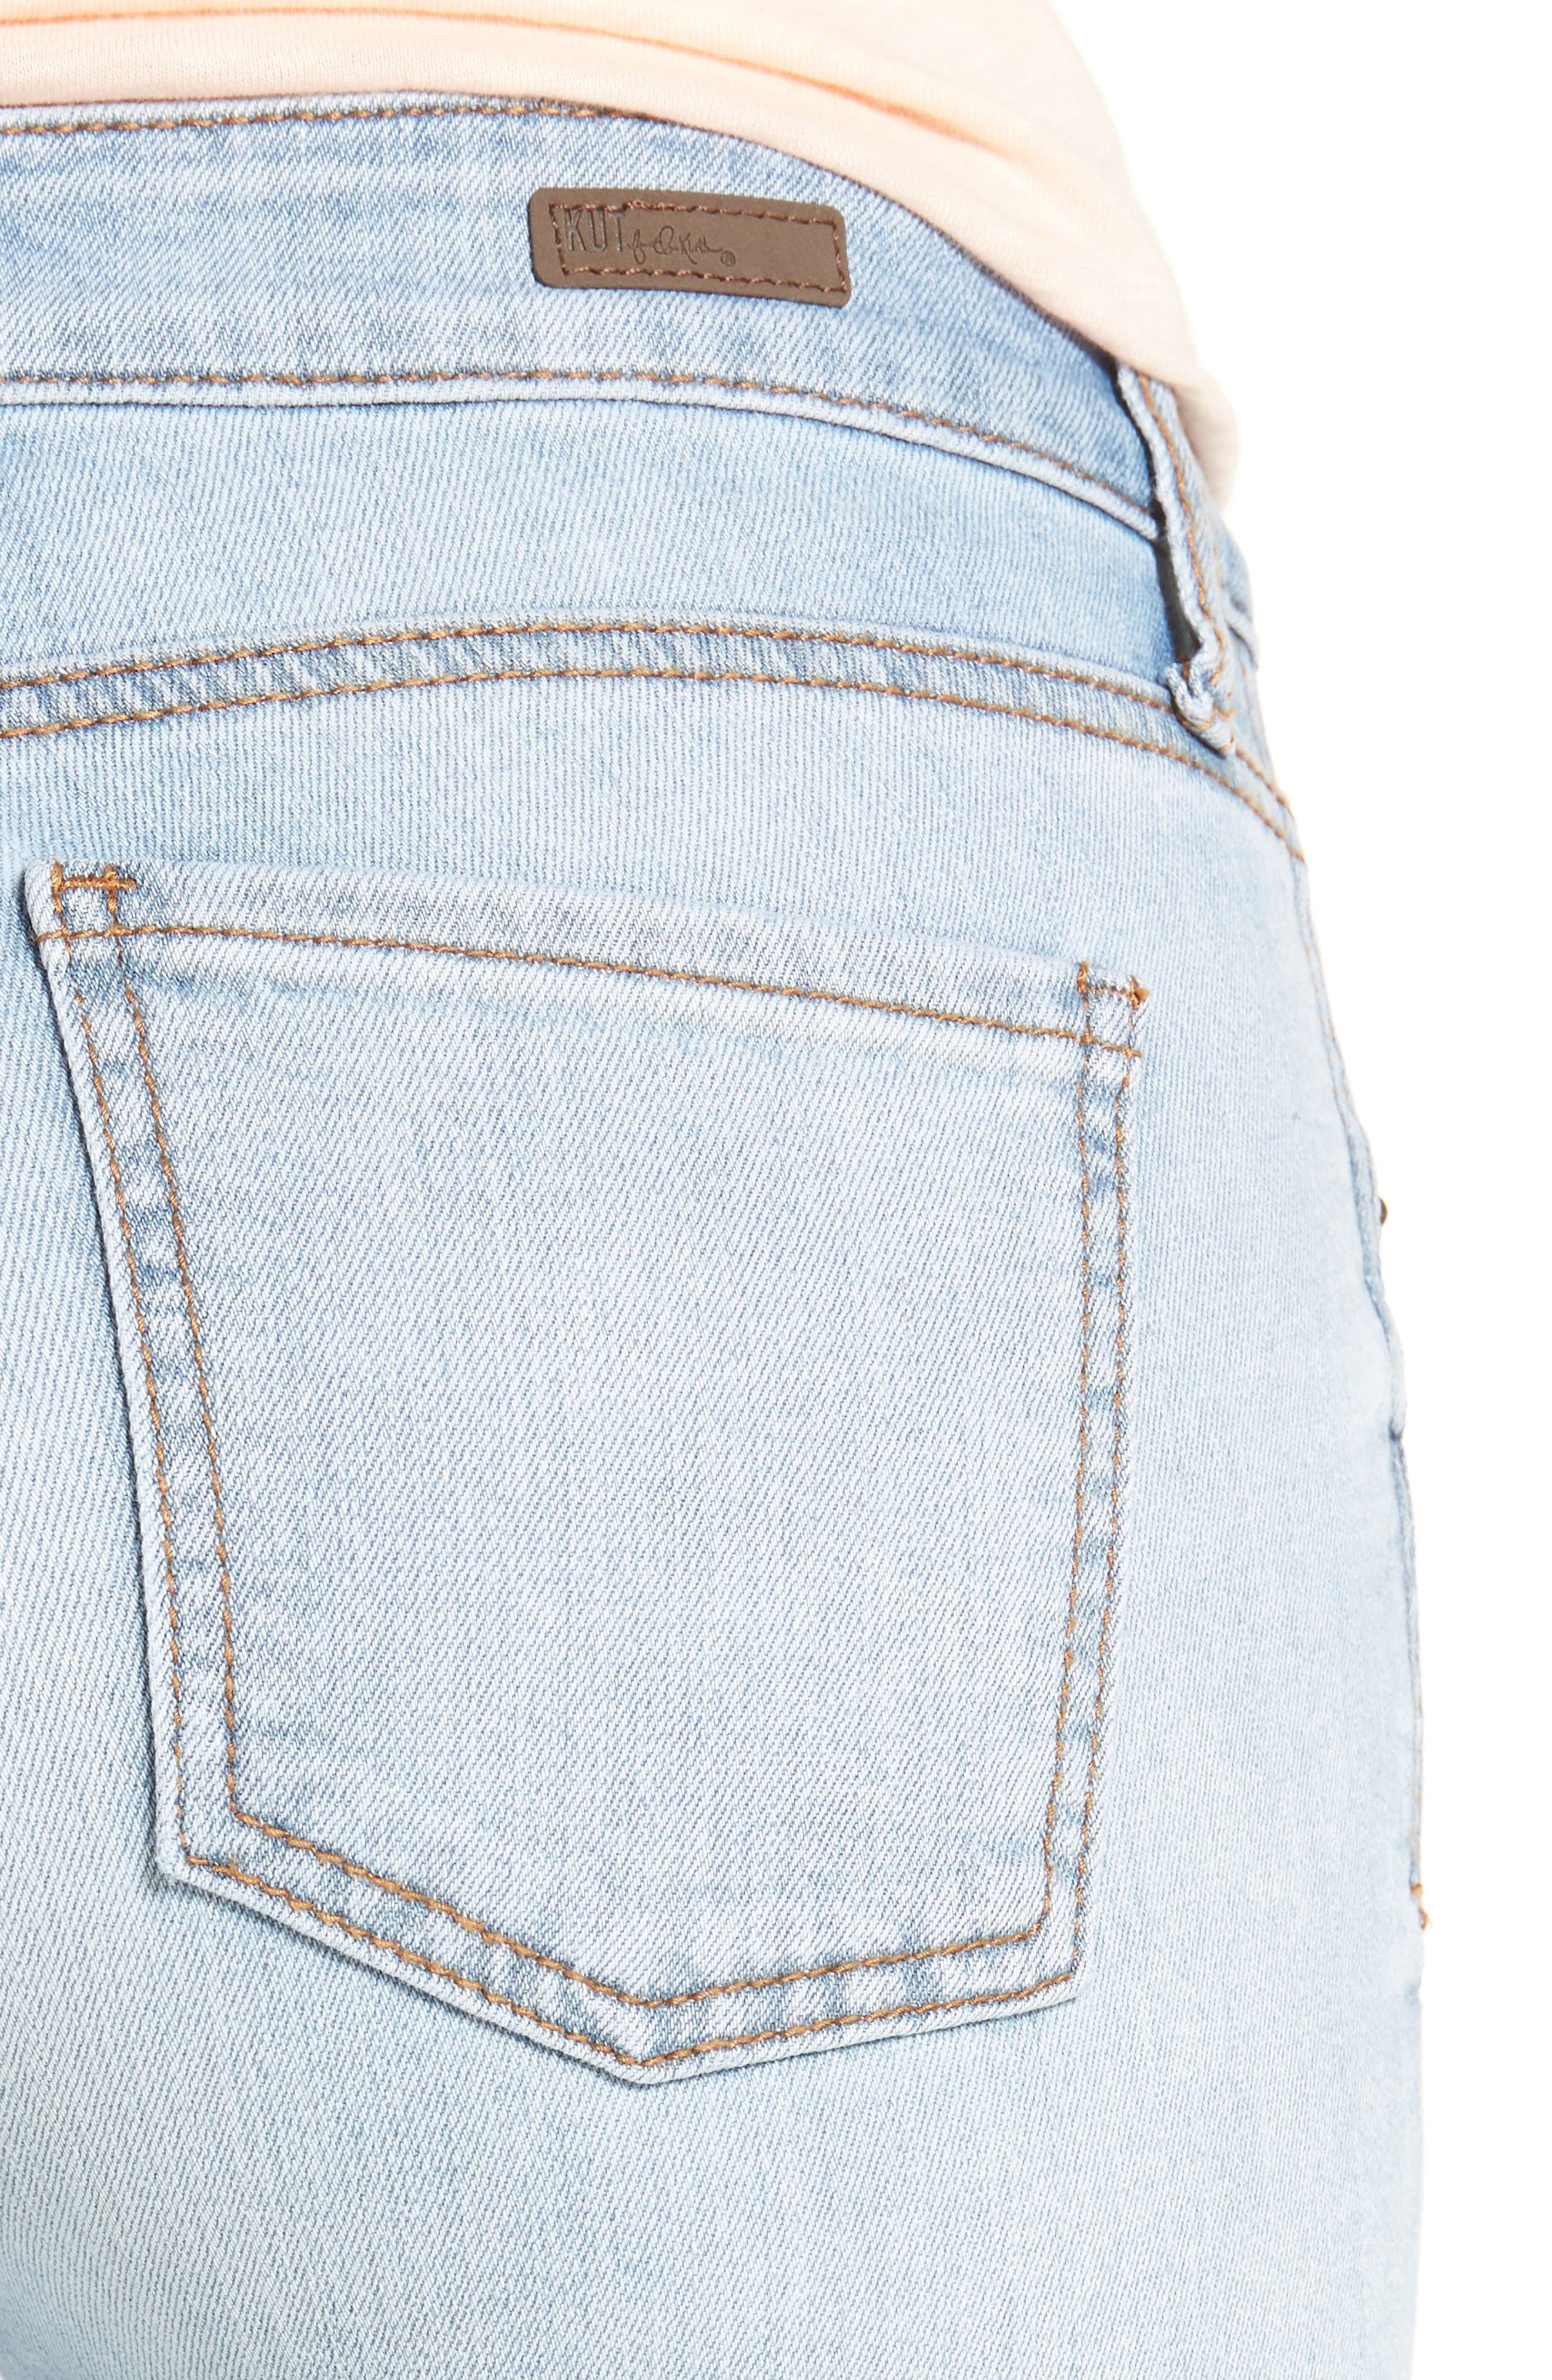 Alternate Image 4  - KUT from the Kloth Mia Toothpick Skinny Jeans (Expectation)